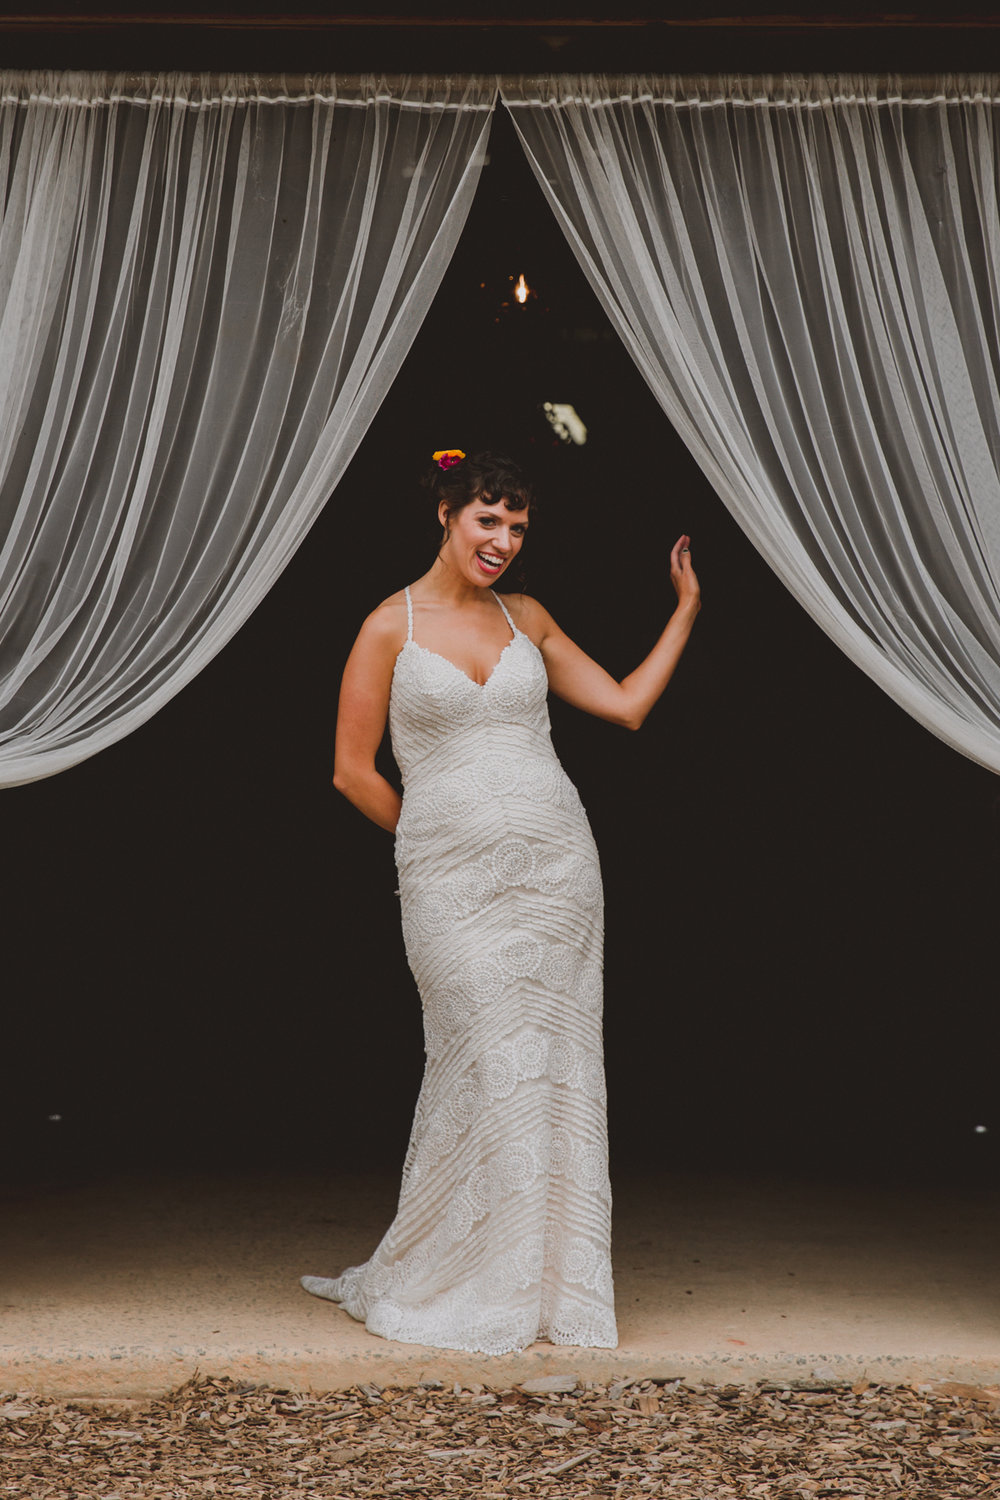 deanna-shafer-jewel-tone-fall-kelley-raye-los-angeles-wedding-photographer-34.jpg